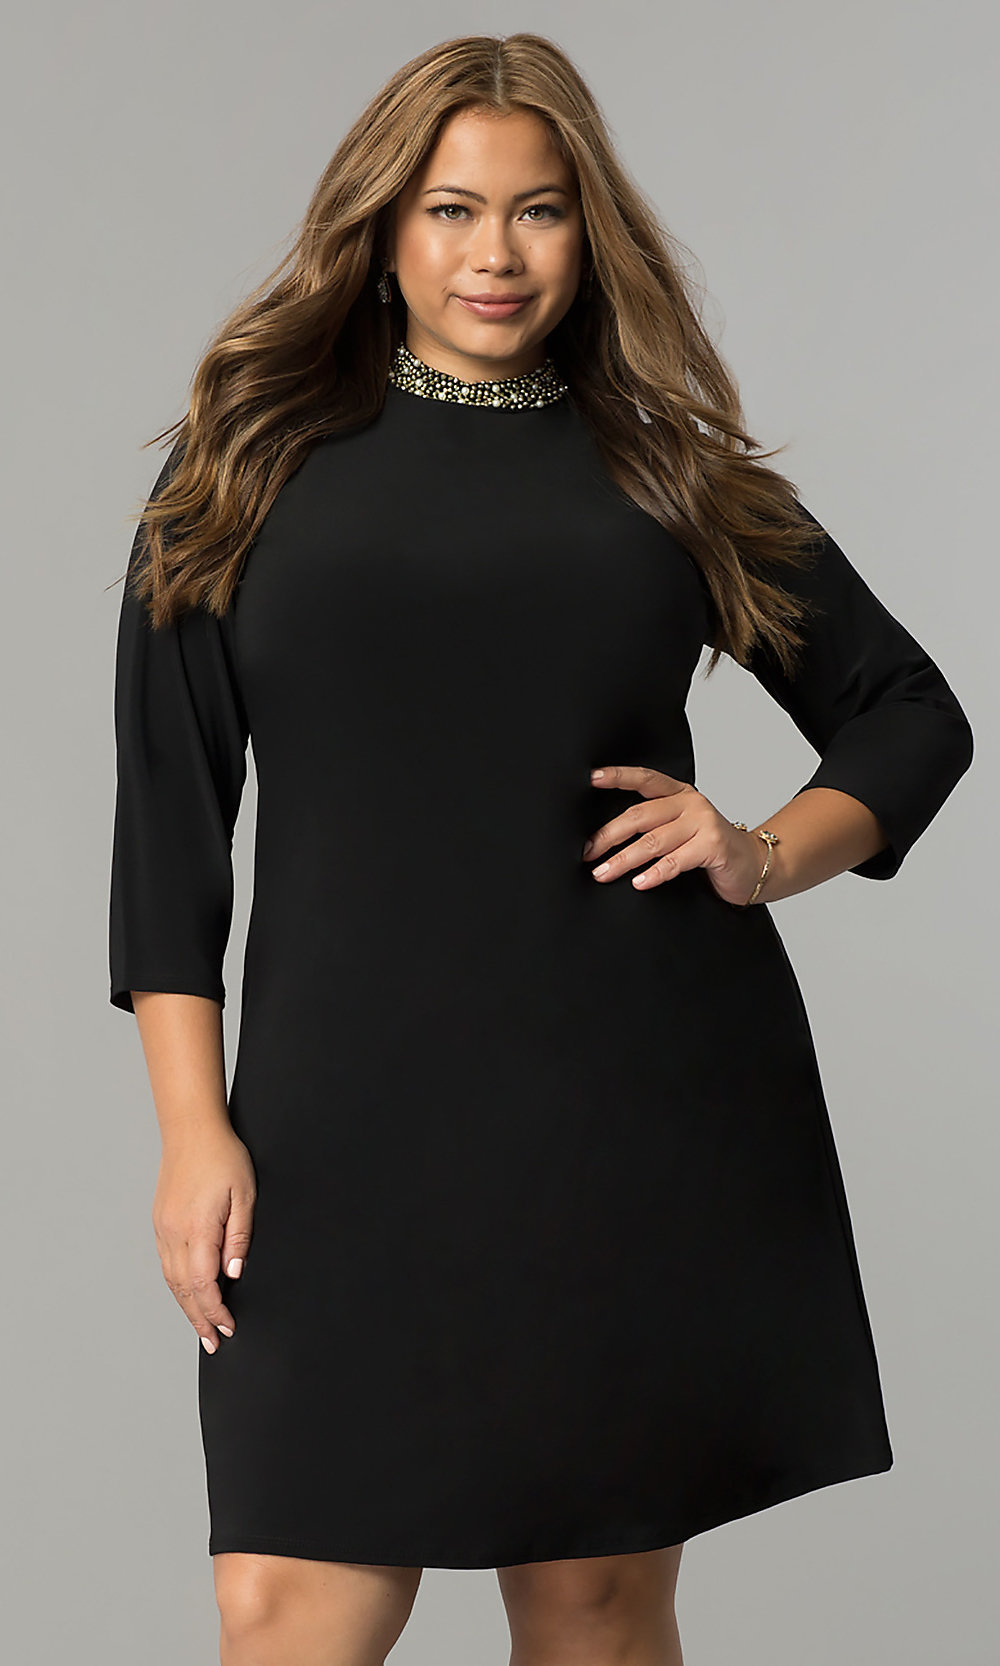 Black Plus-Size Short Party Dress with Sleeves